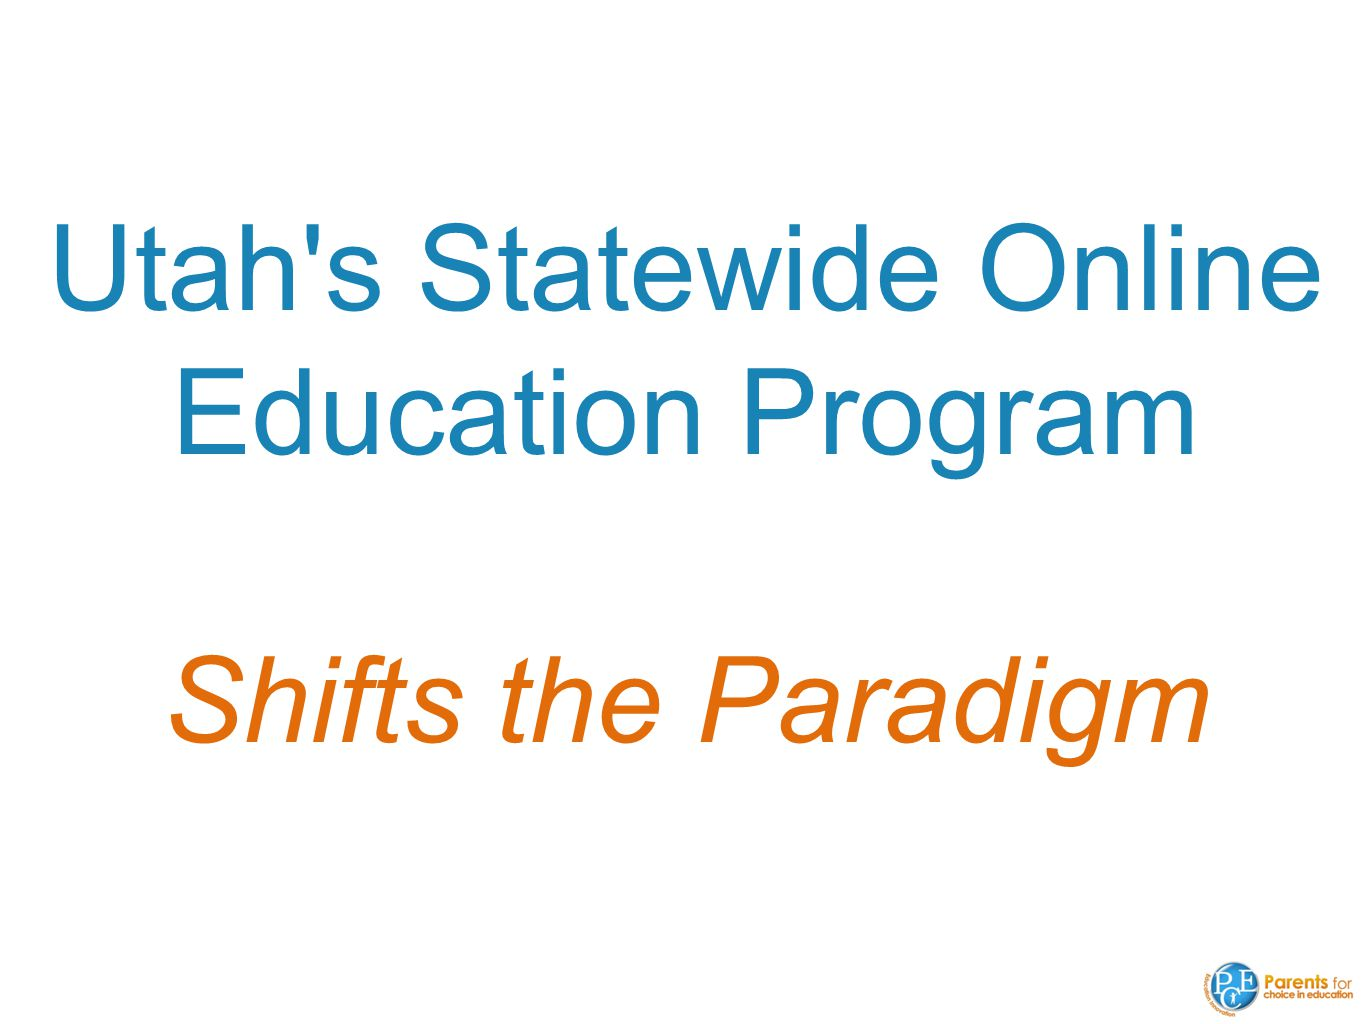 Utah s Statewide Online Education Program Shifts the Paradigm